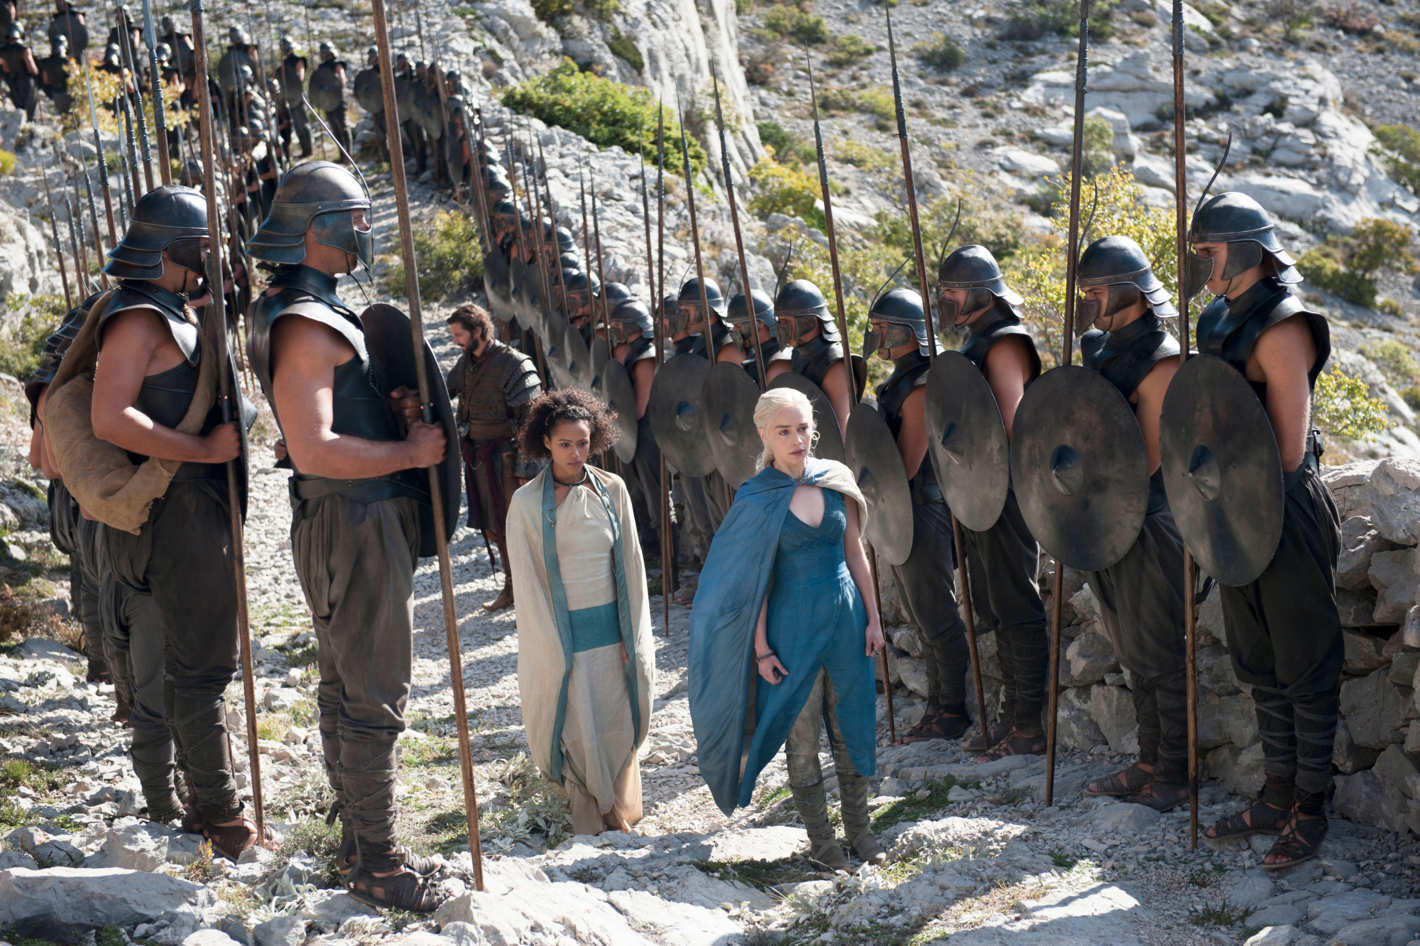 16. The Unsullied